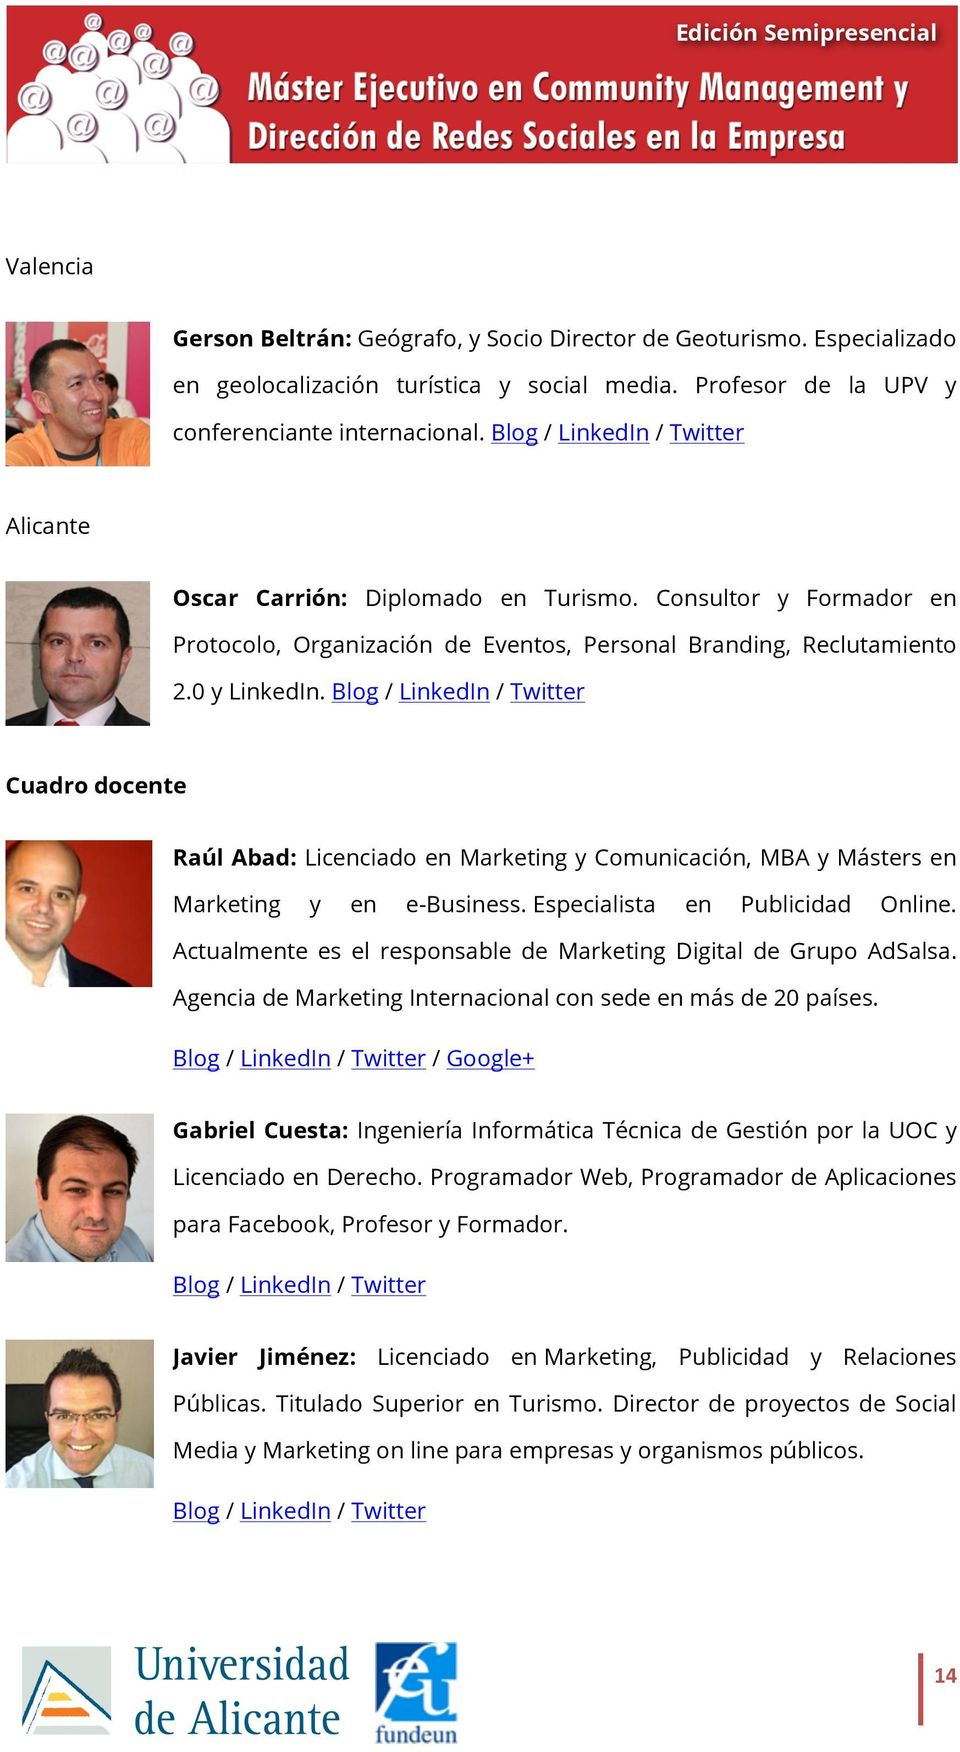 Blog / LinkedIn / Twitter Cuadro docente Raúl Abad: Licenciado en Marketing y Comunicación, MBA y Másters en Marketing y en e-business. Especialista en Publicidad Online.